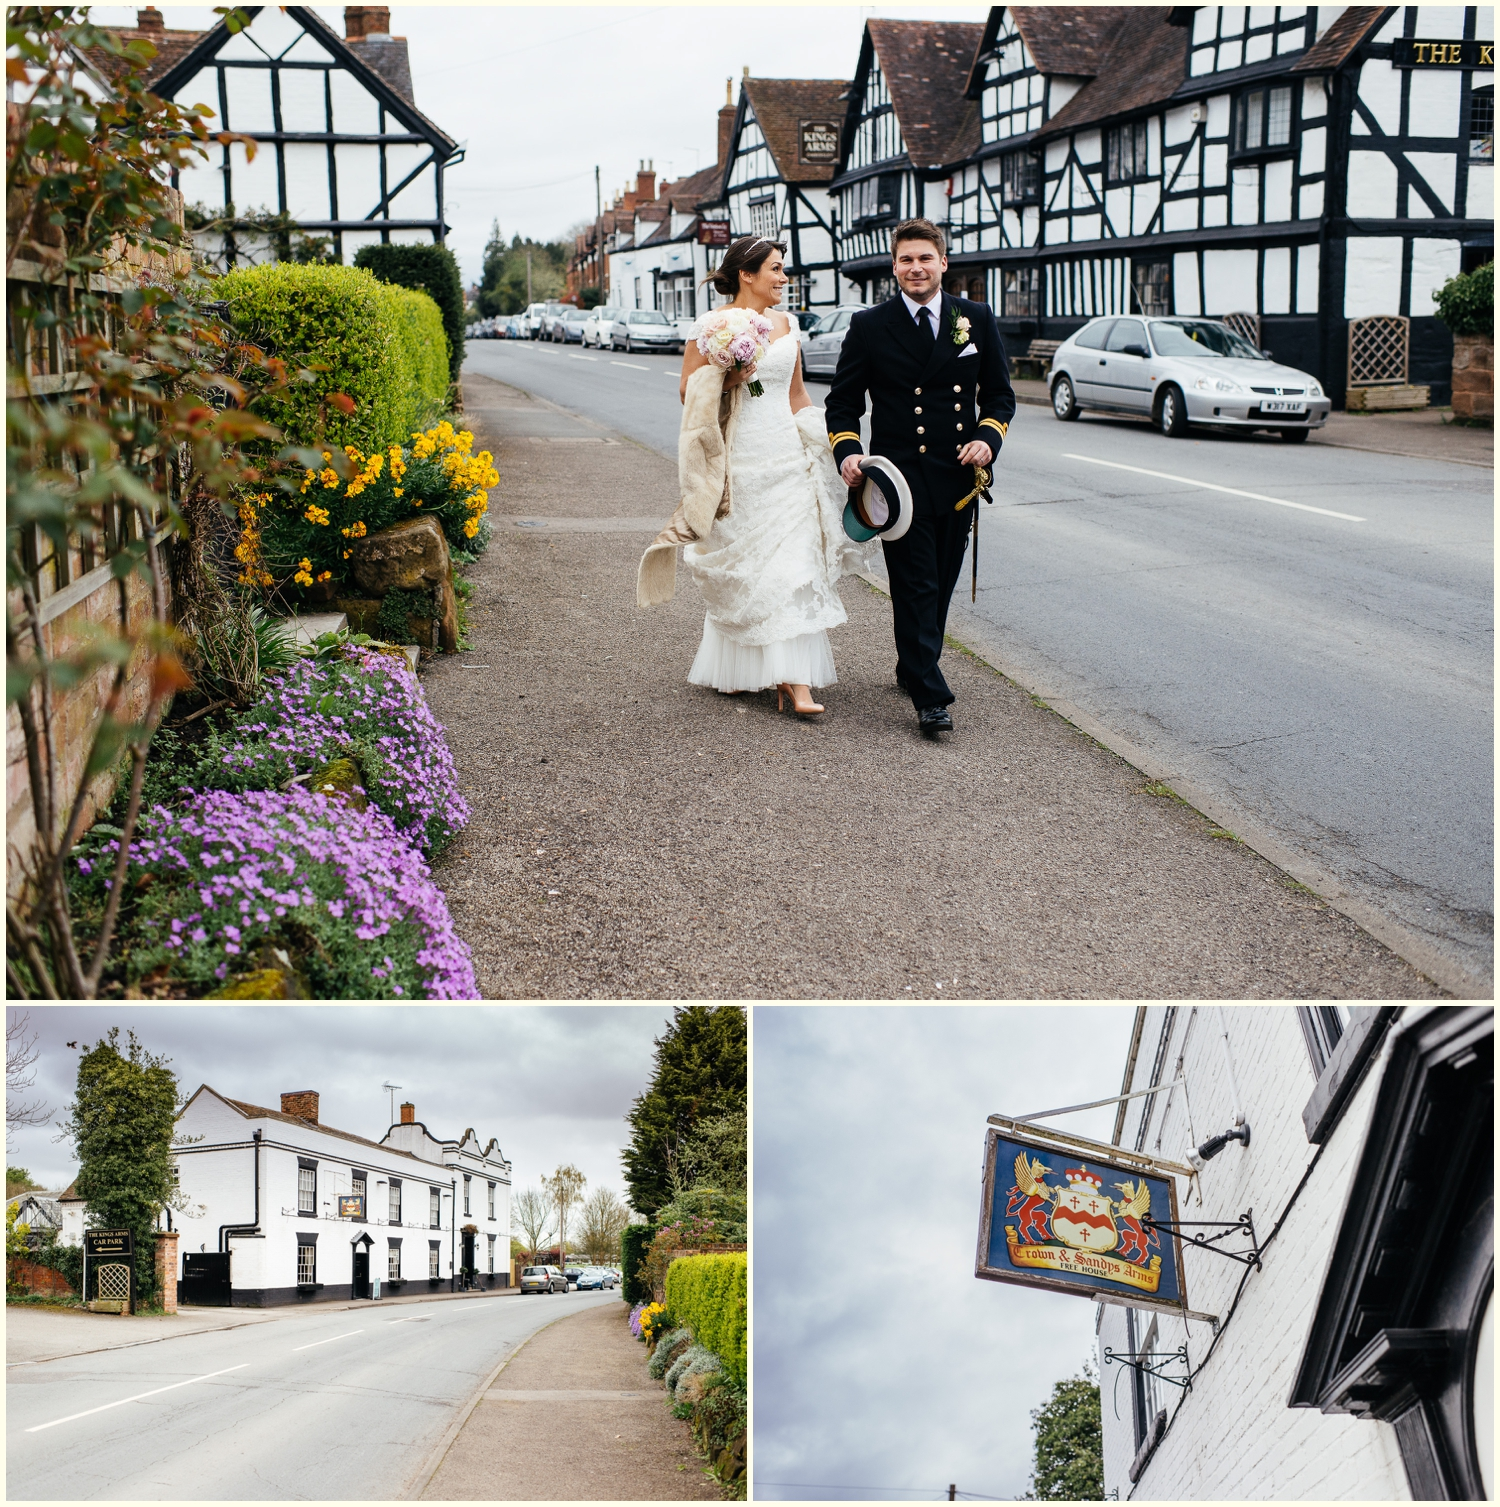 Nikki_Cooper_Photography_Rich&Sarah_Wedding_Photos_Crown_and_Sandys_Ombersley_Worcester_1035.jpg